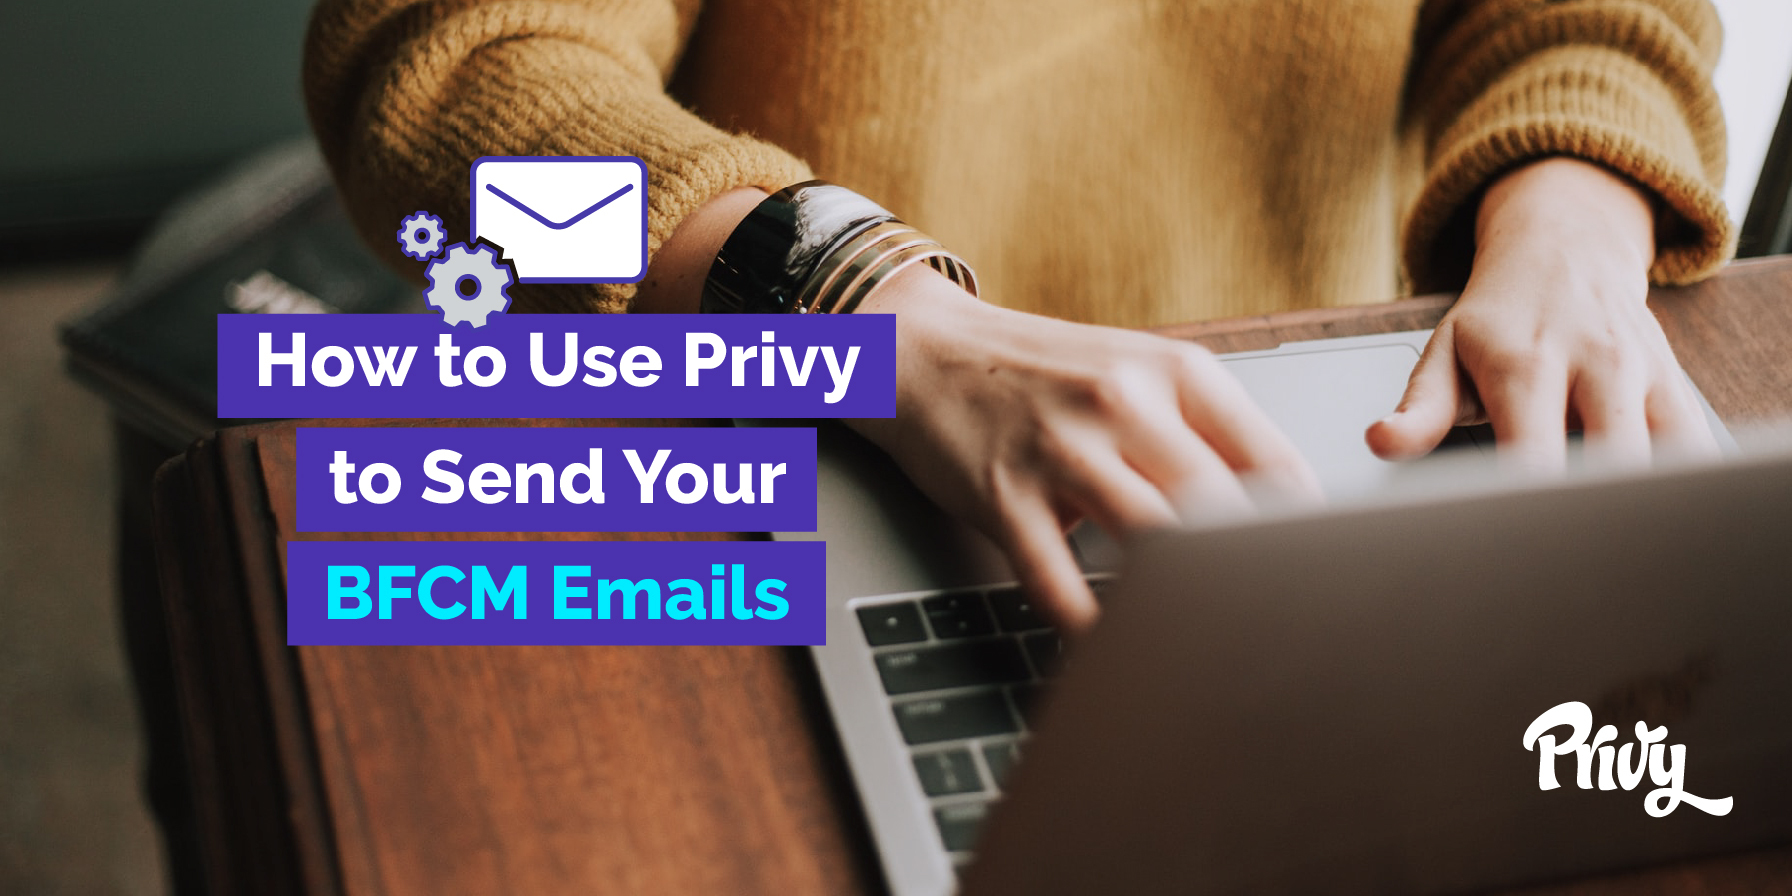 How To Send An Email For BFCM With Privy Email